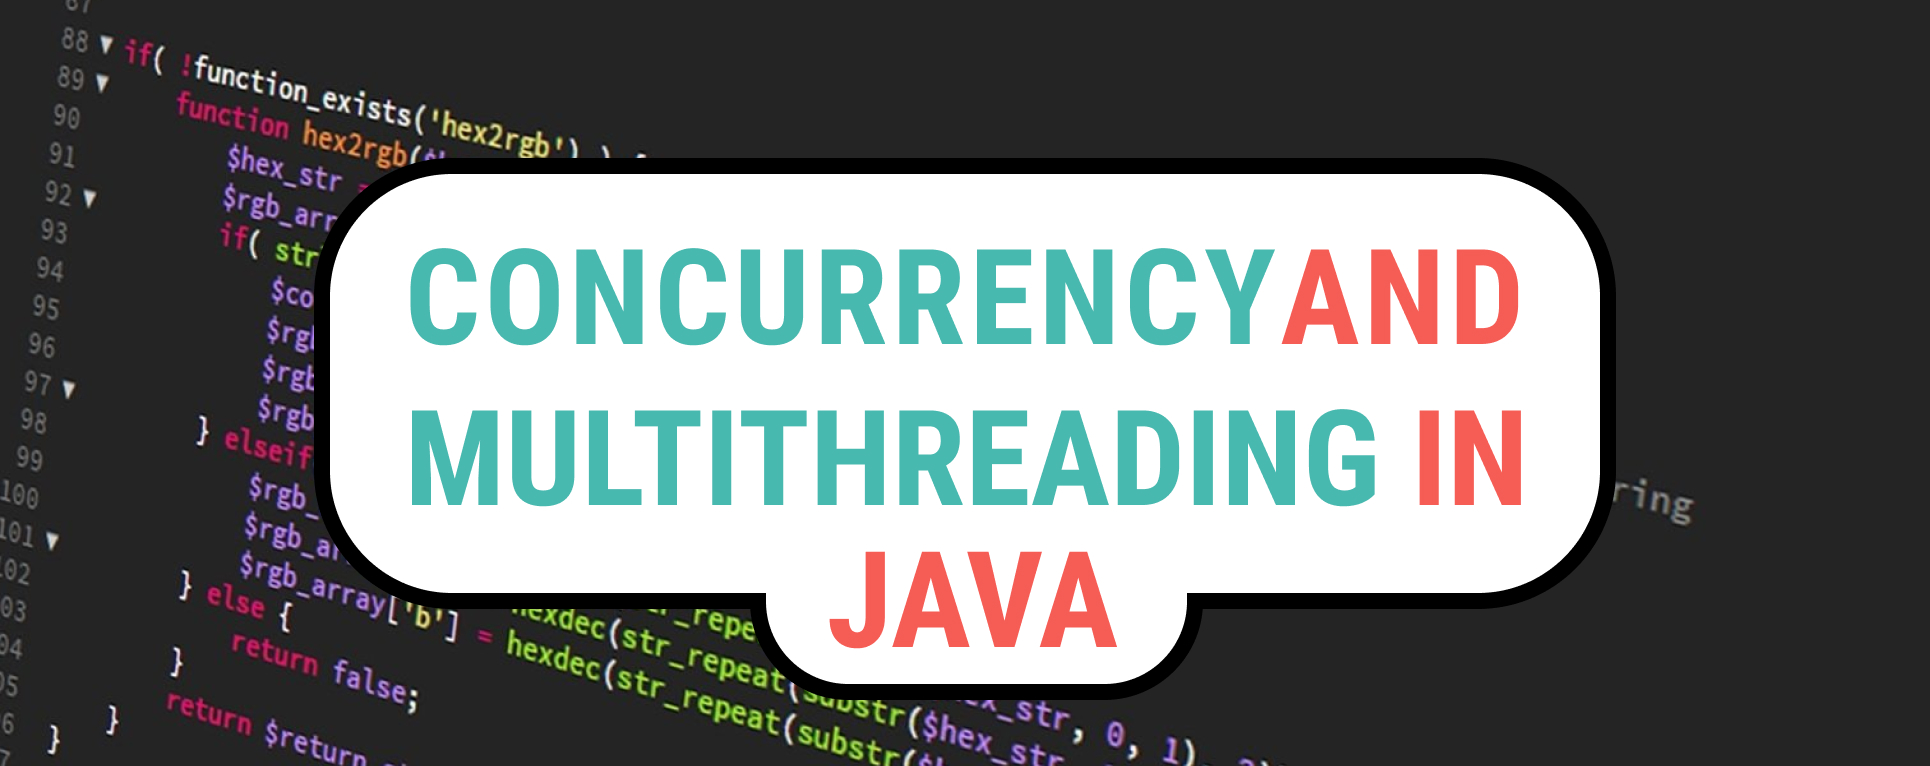 Concurrency and Multithreading in Java